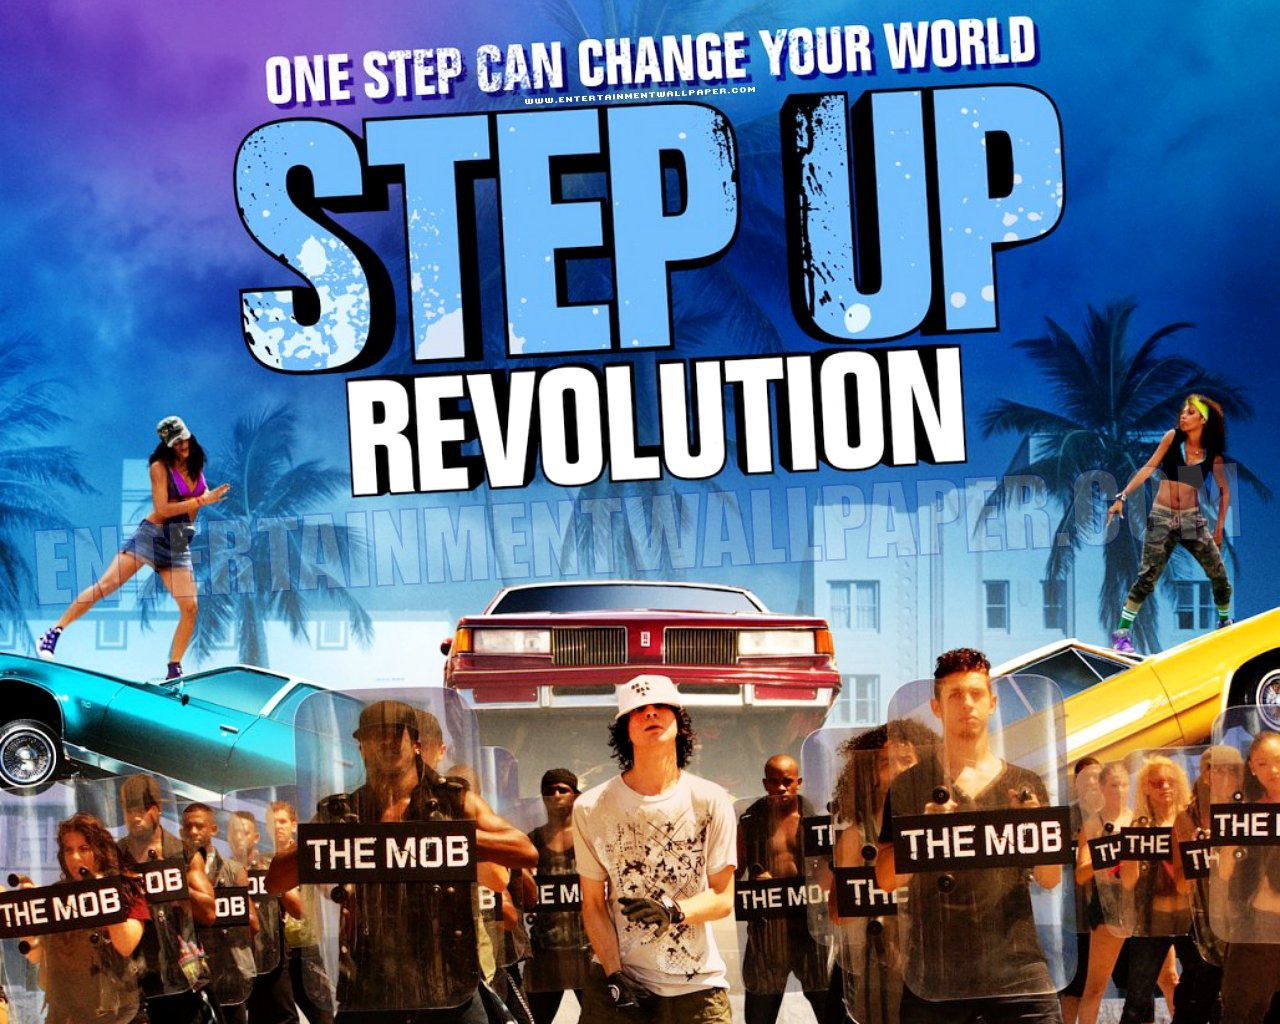 http://1.bp.blogspot.com/-_E-55YjOSao/UBn28SX5E0I/AAAAAAAADao/euVA6fV0ue8/s1600/Step+Up+Revolution+Wallpaper.jpg